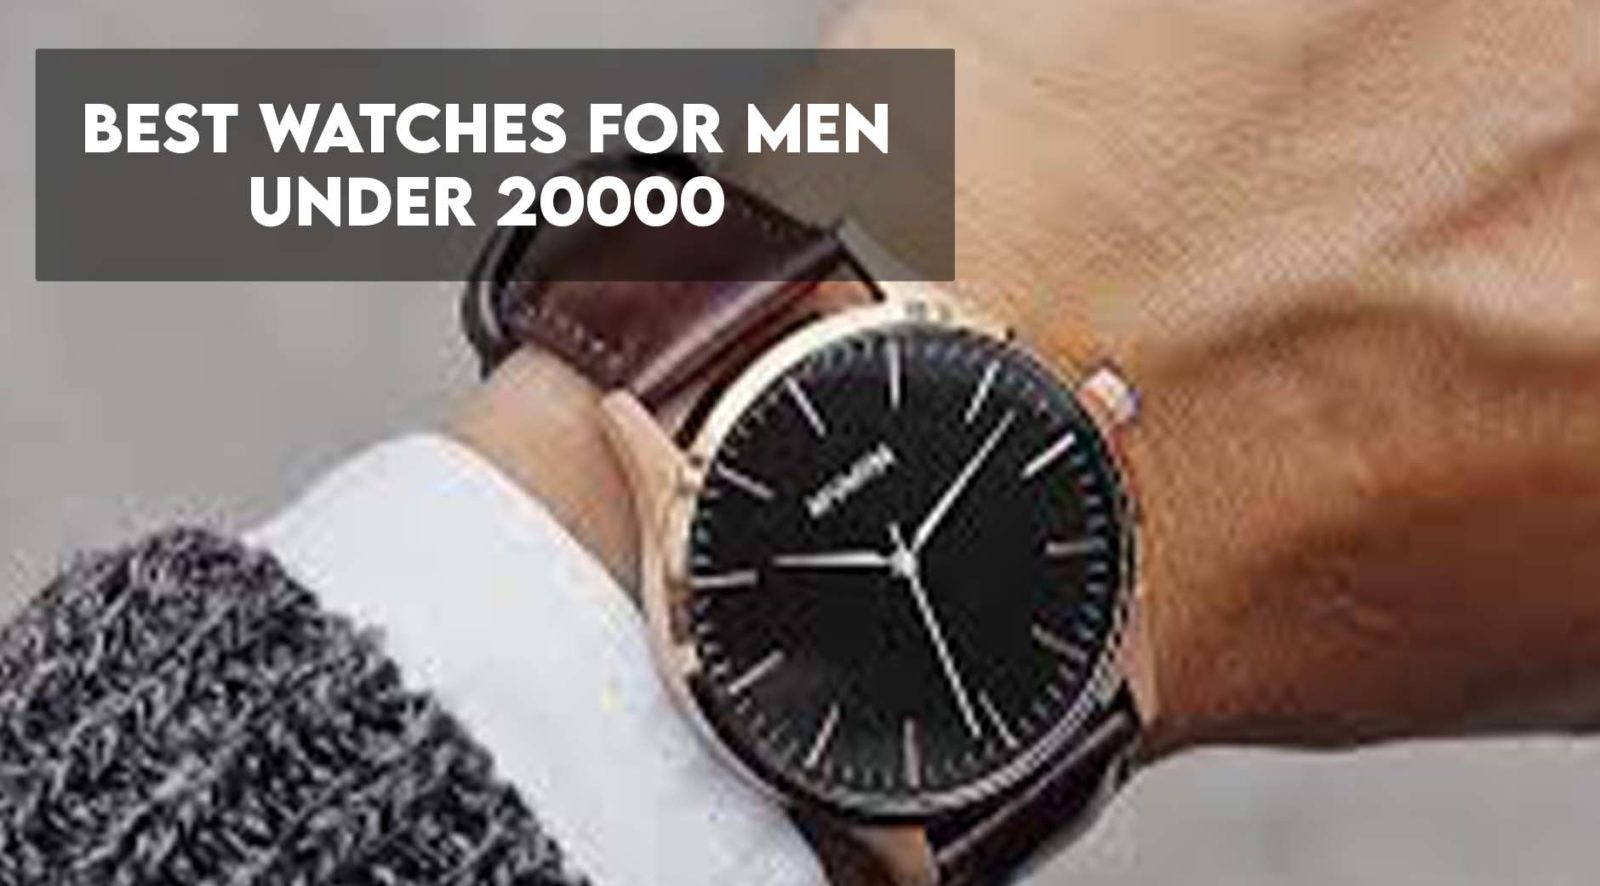 Best Watches For Men Under 20000